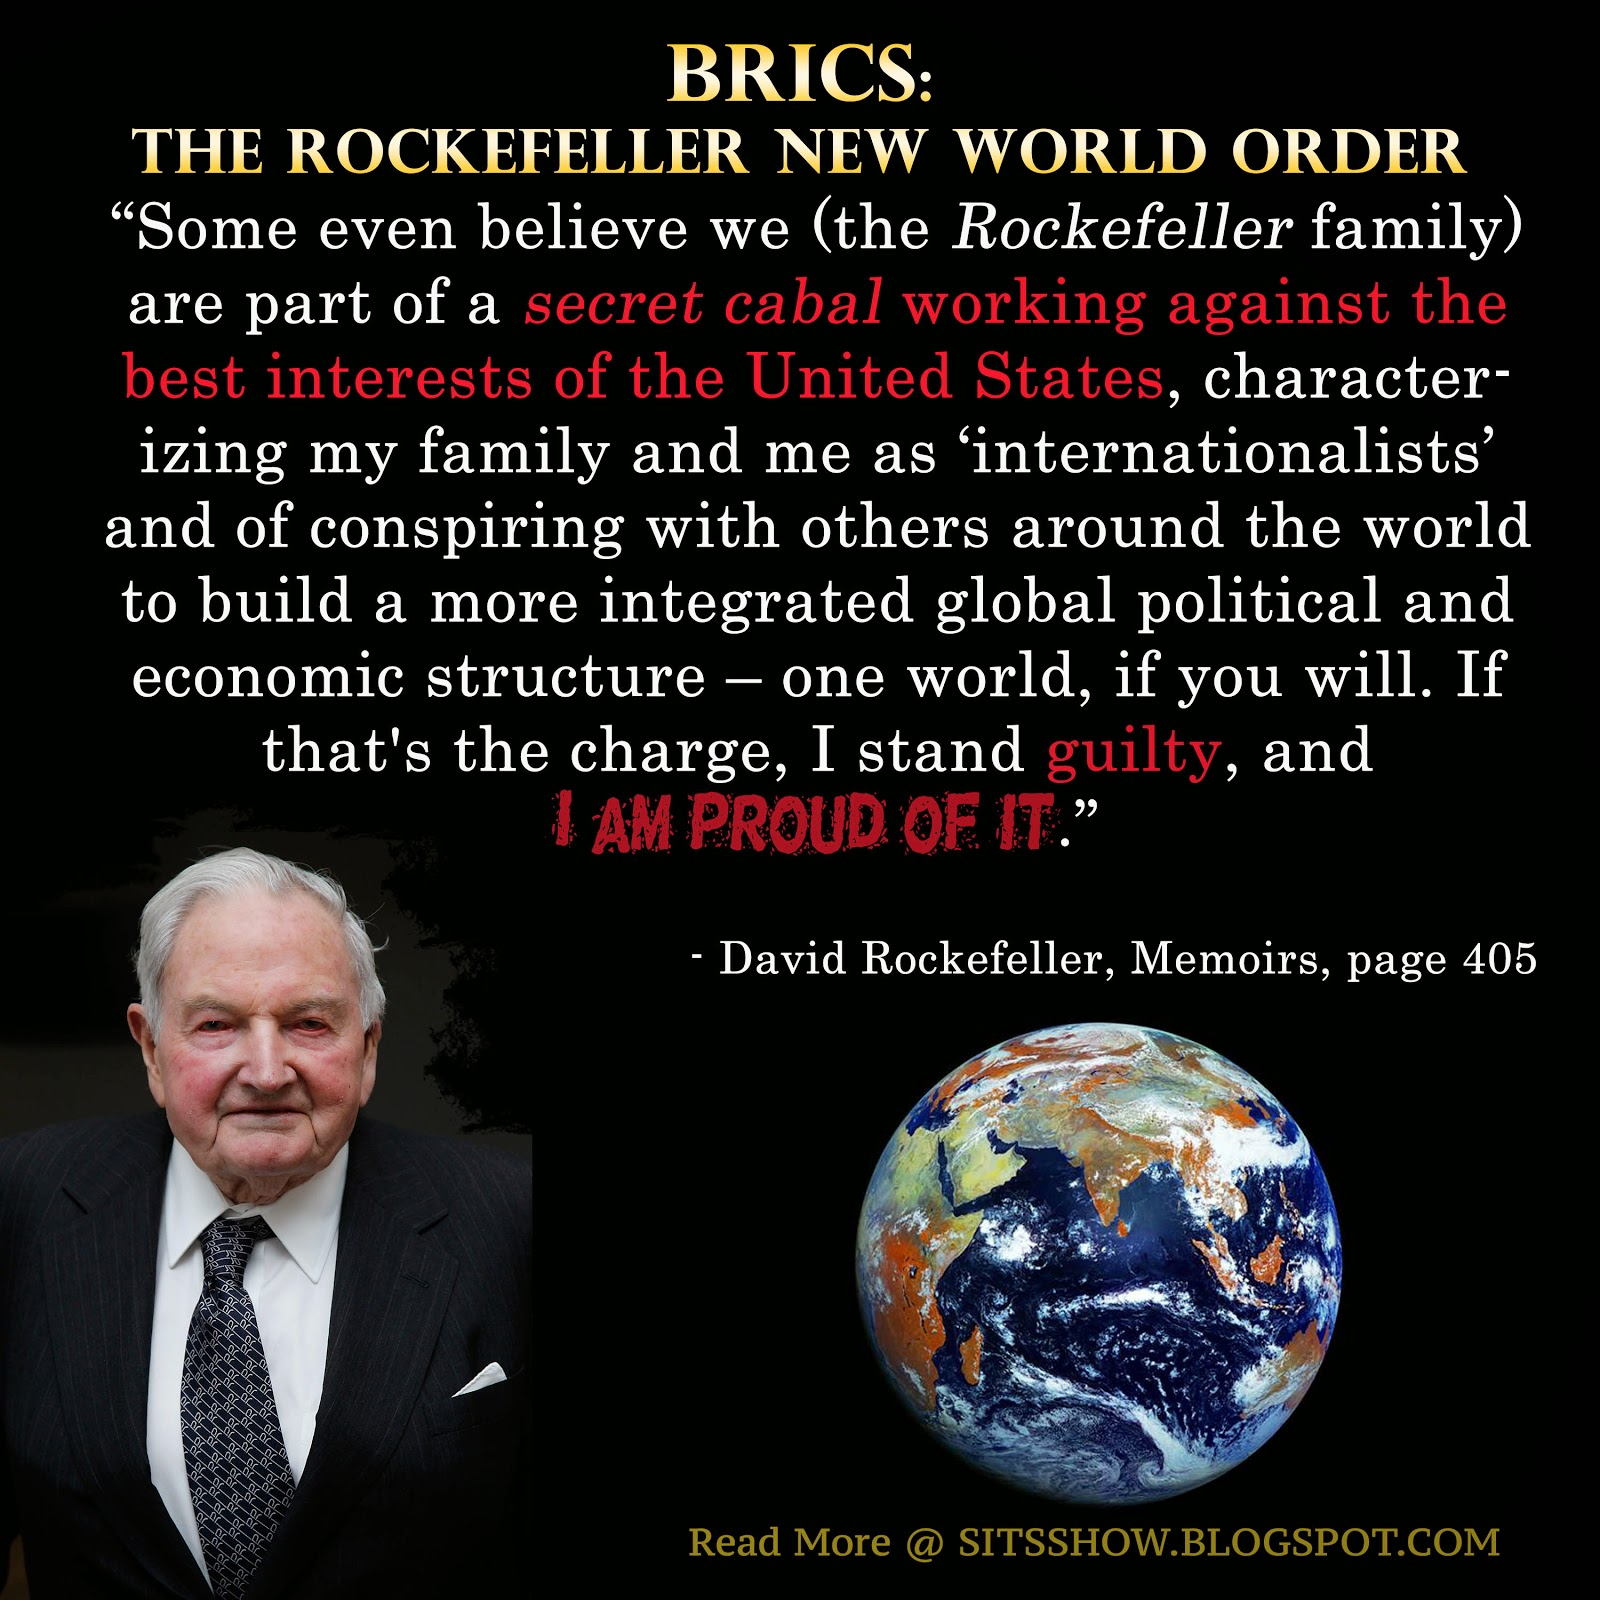 BRICS CHINA & ROCKEFELLER New World ORDER to be IMPLEMENTED 1 OCT 2016, SO NOW WE ALL KNOW WHO HAS BEEN PULLING THE STRINGS EVERY WHERE in the WORLD. BRICSRockefeller